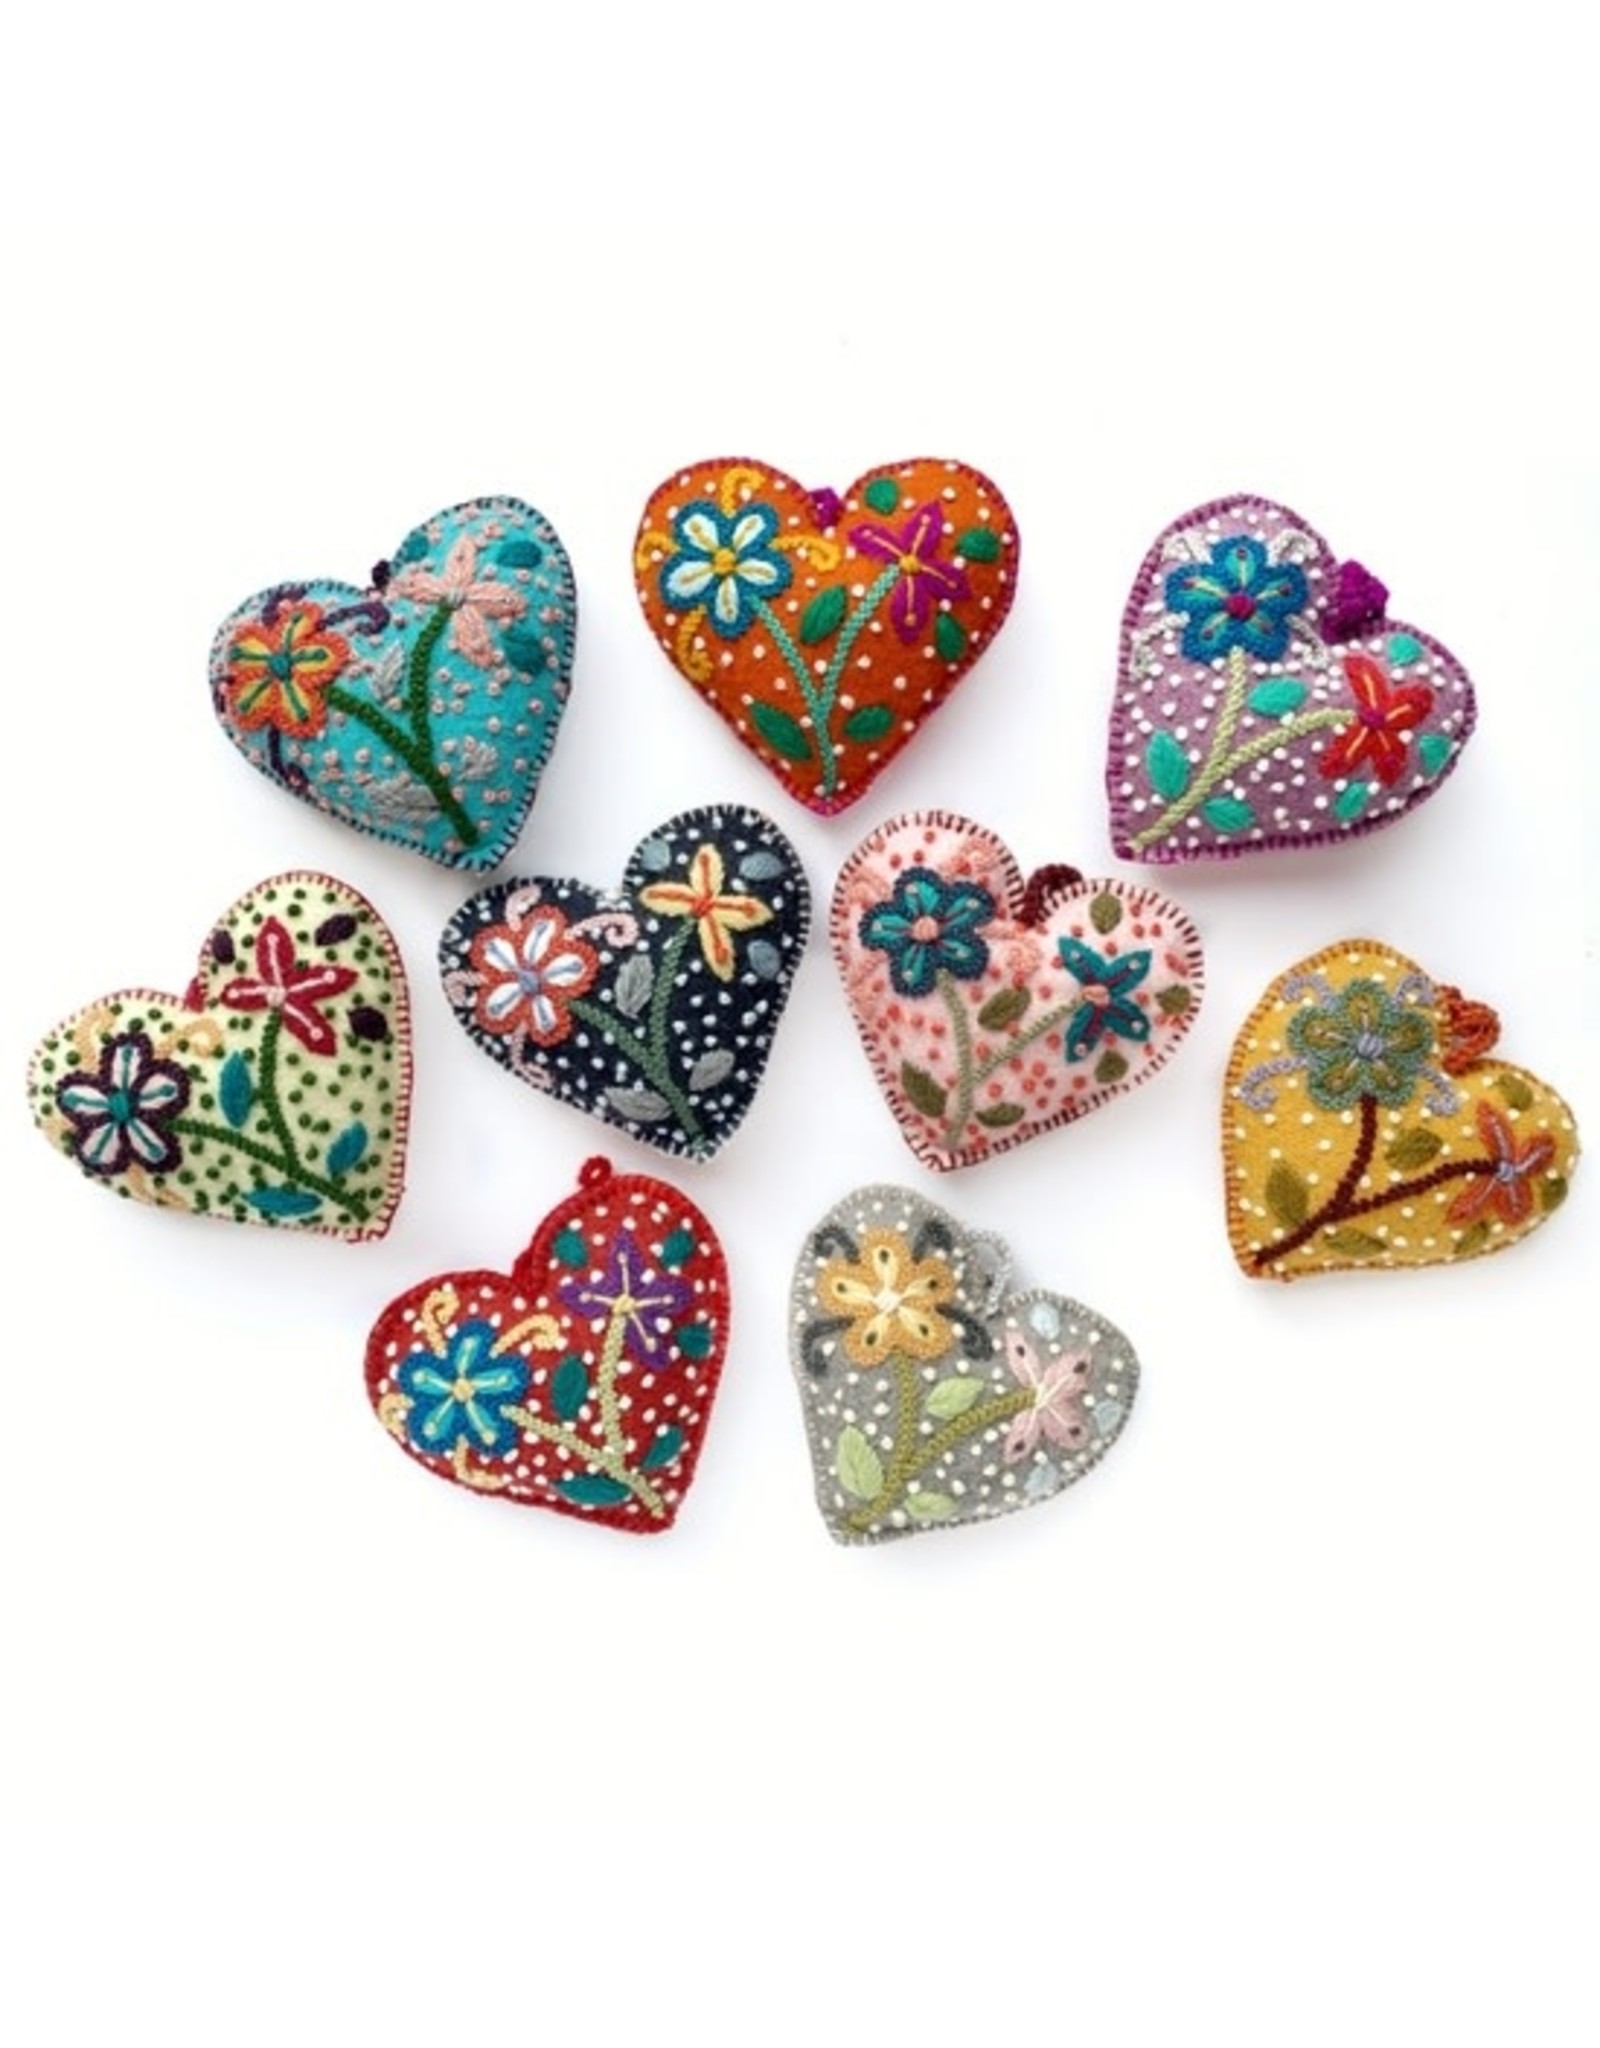 Colorful Hearts with Flowers and Dots Ornament, Variety, Peru